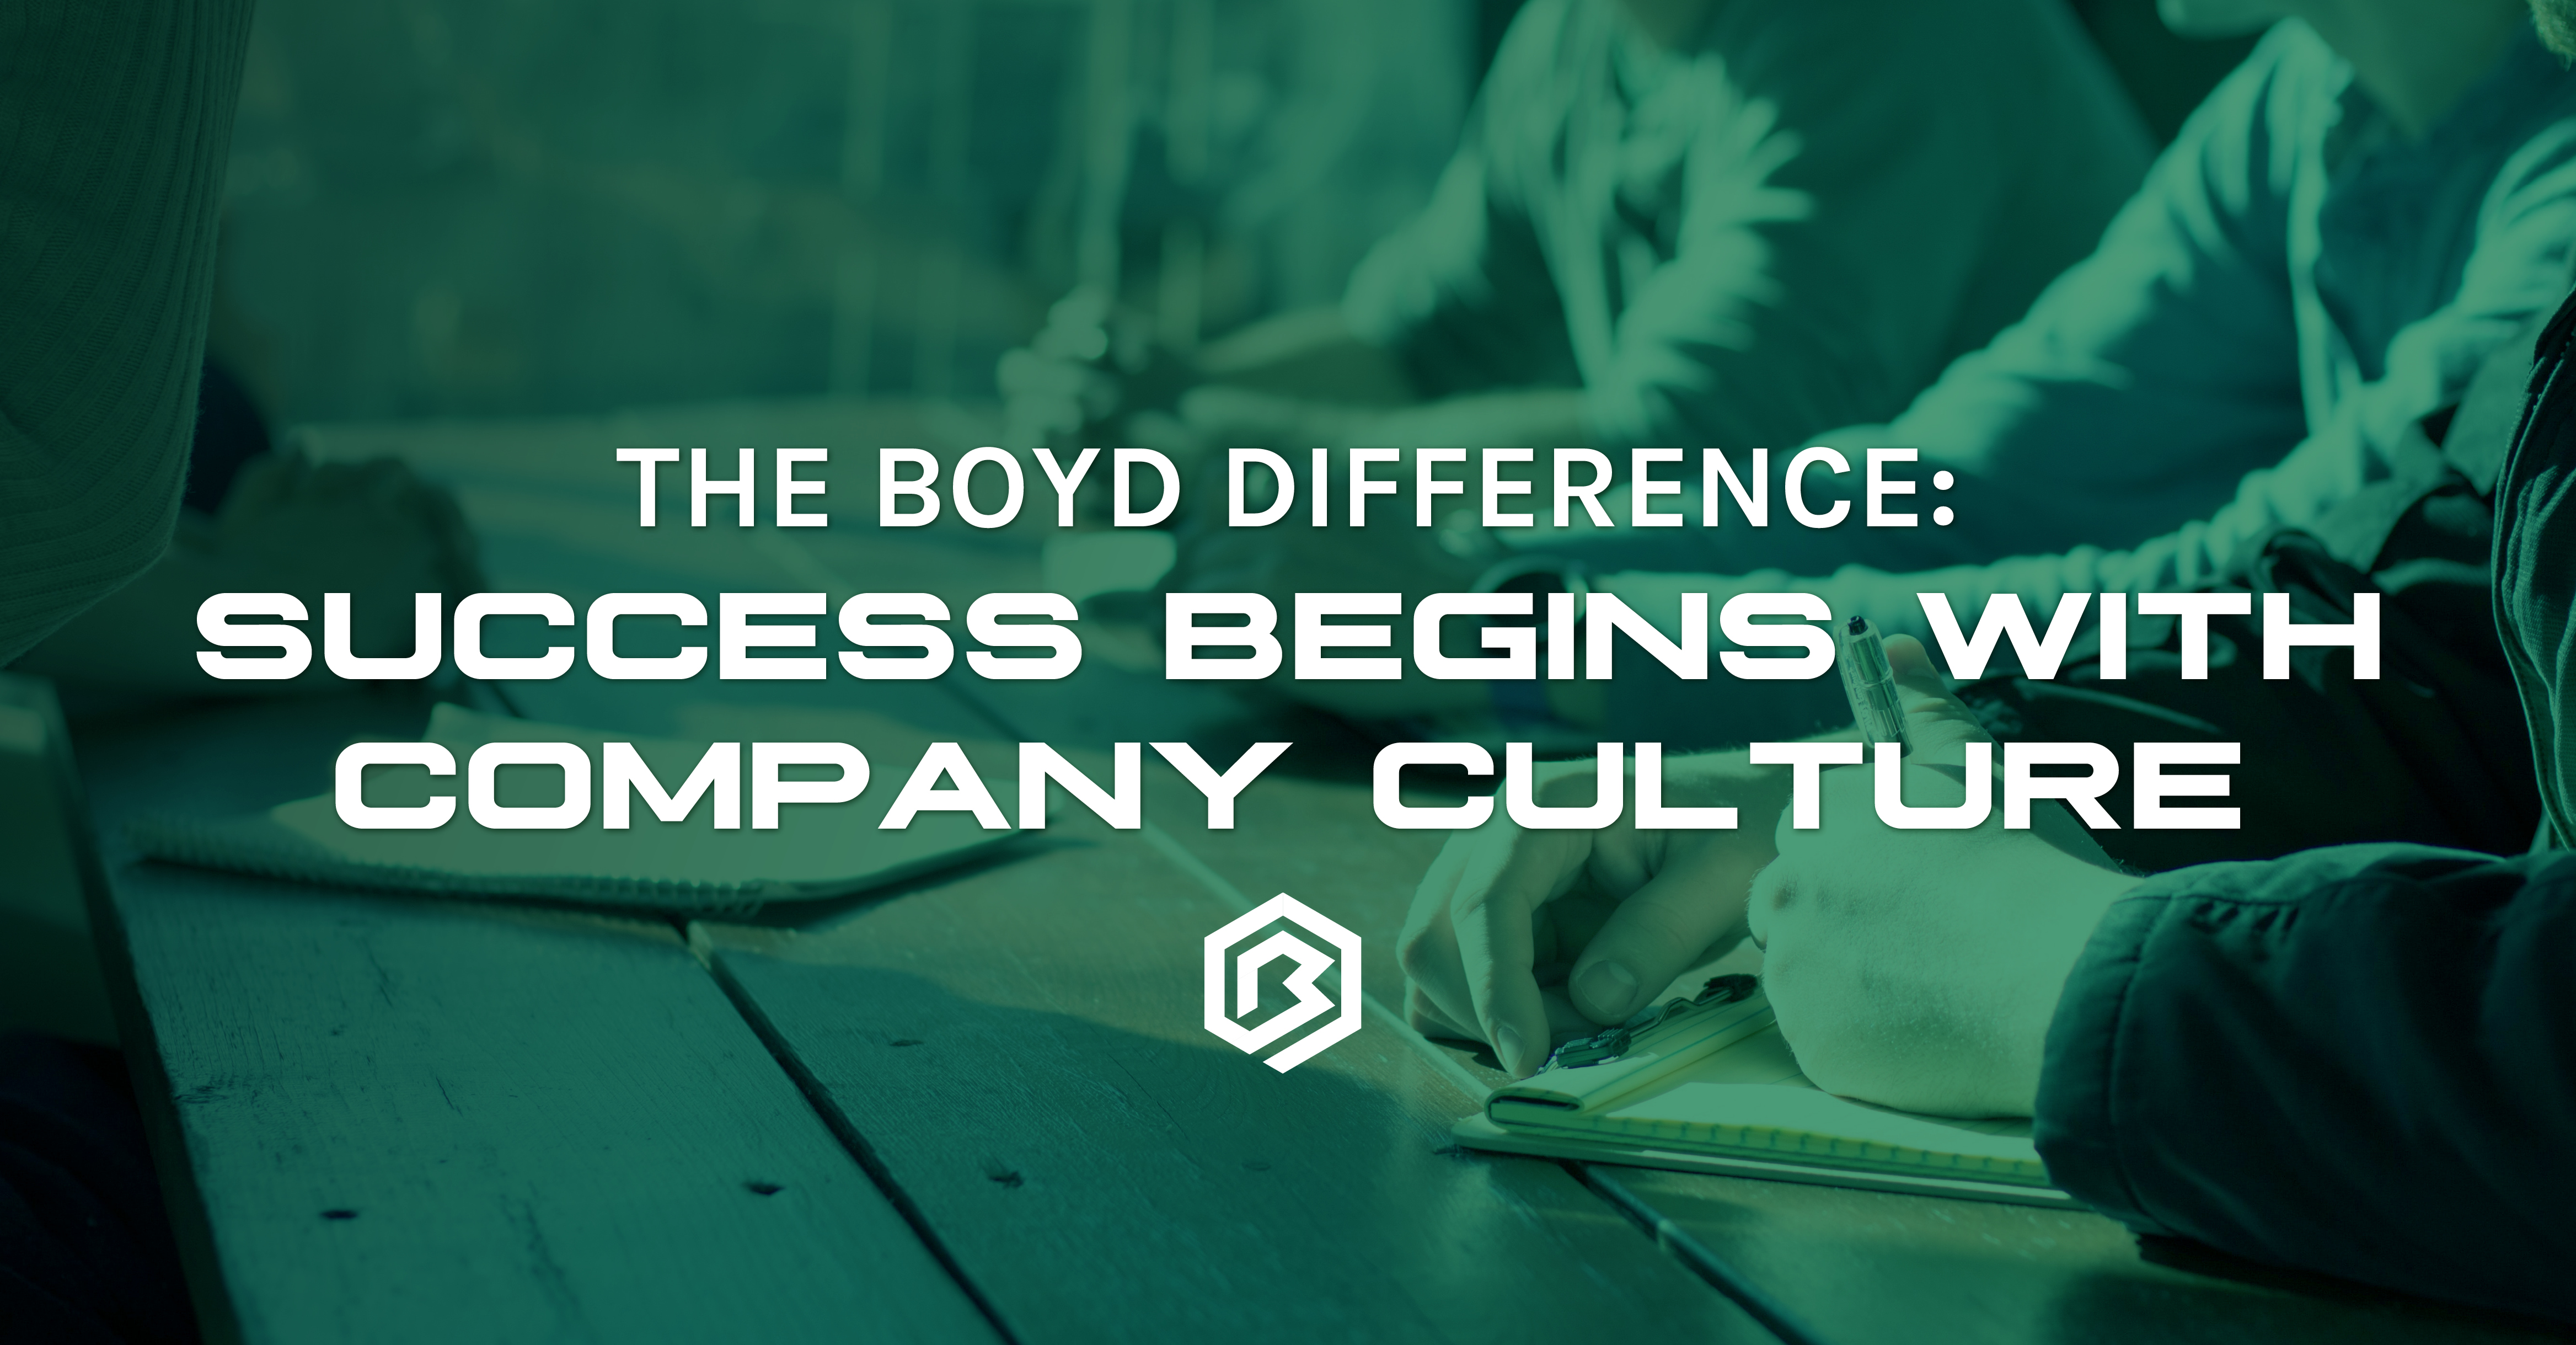 The Boyd Difference: Success Begins With Company Culture